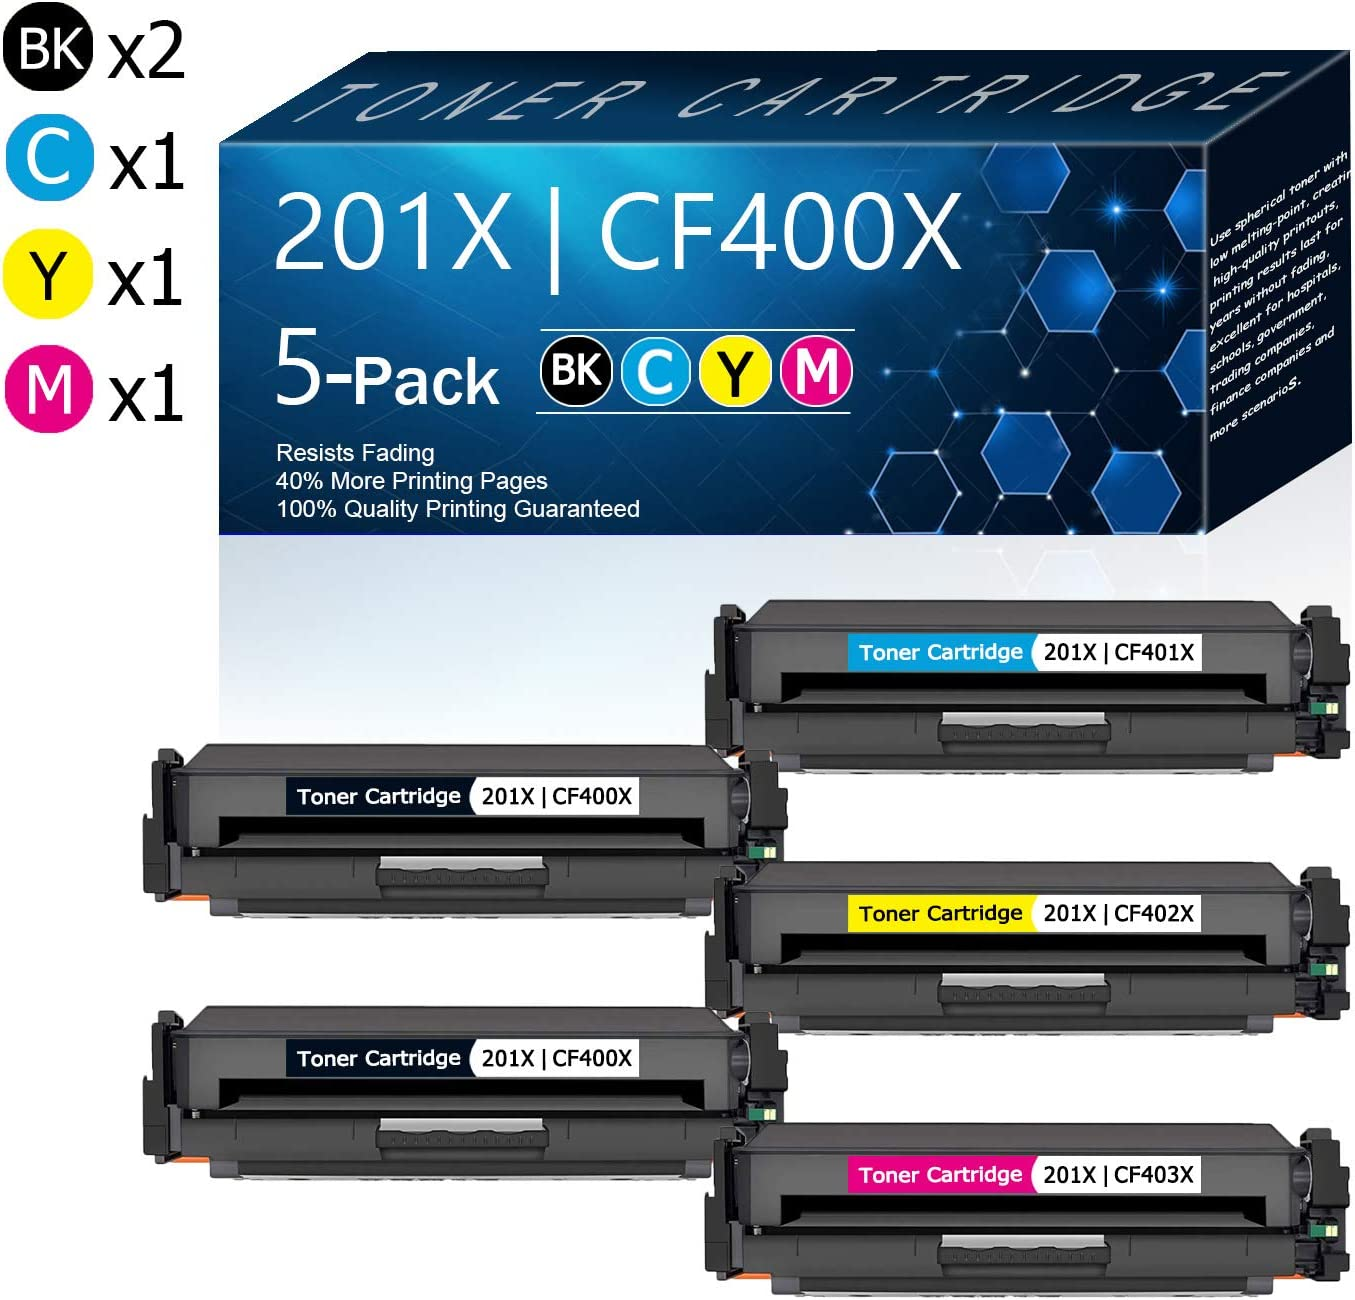 5 Pack (2BK/1C/1Y/1M) 201X   CF400X CF401X CF402X CF403X Compatible Toner Cartridge Replacement for HP Color Pro M252dw M252n Pro MFP M277n M277dw M277c6 M274n Printers Toner.